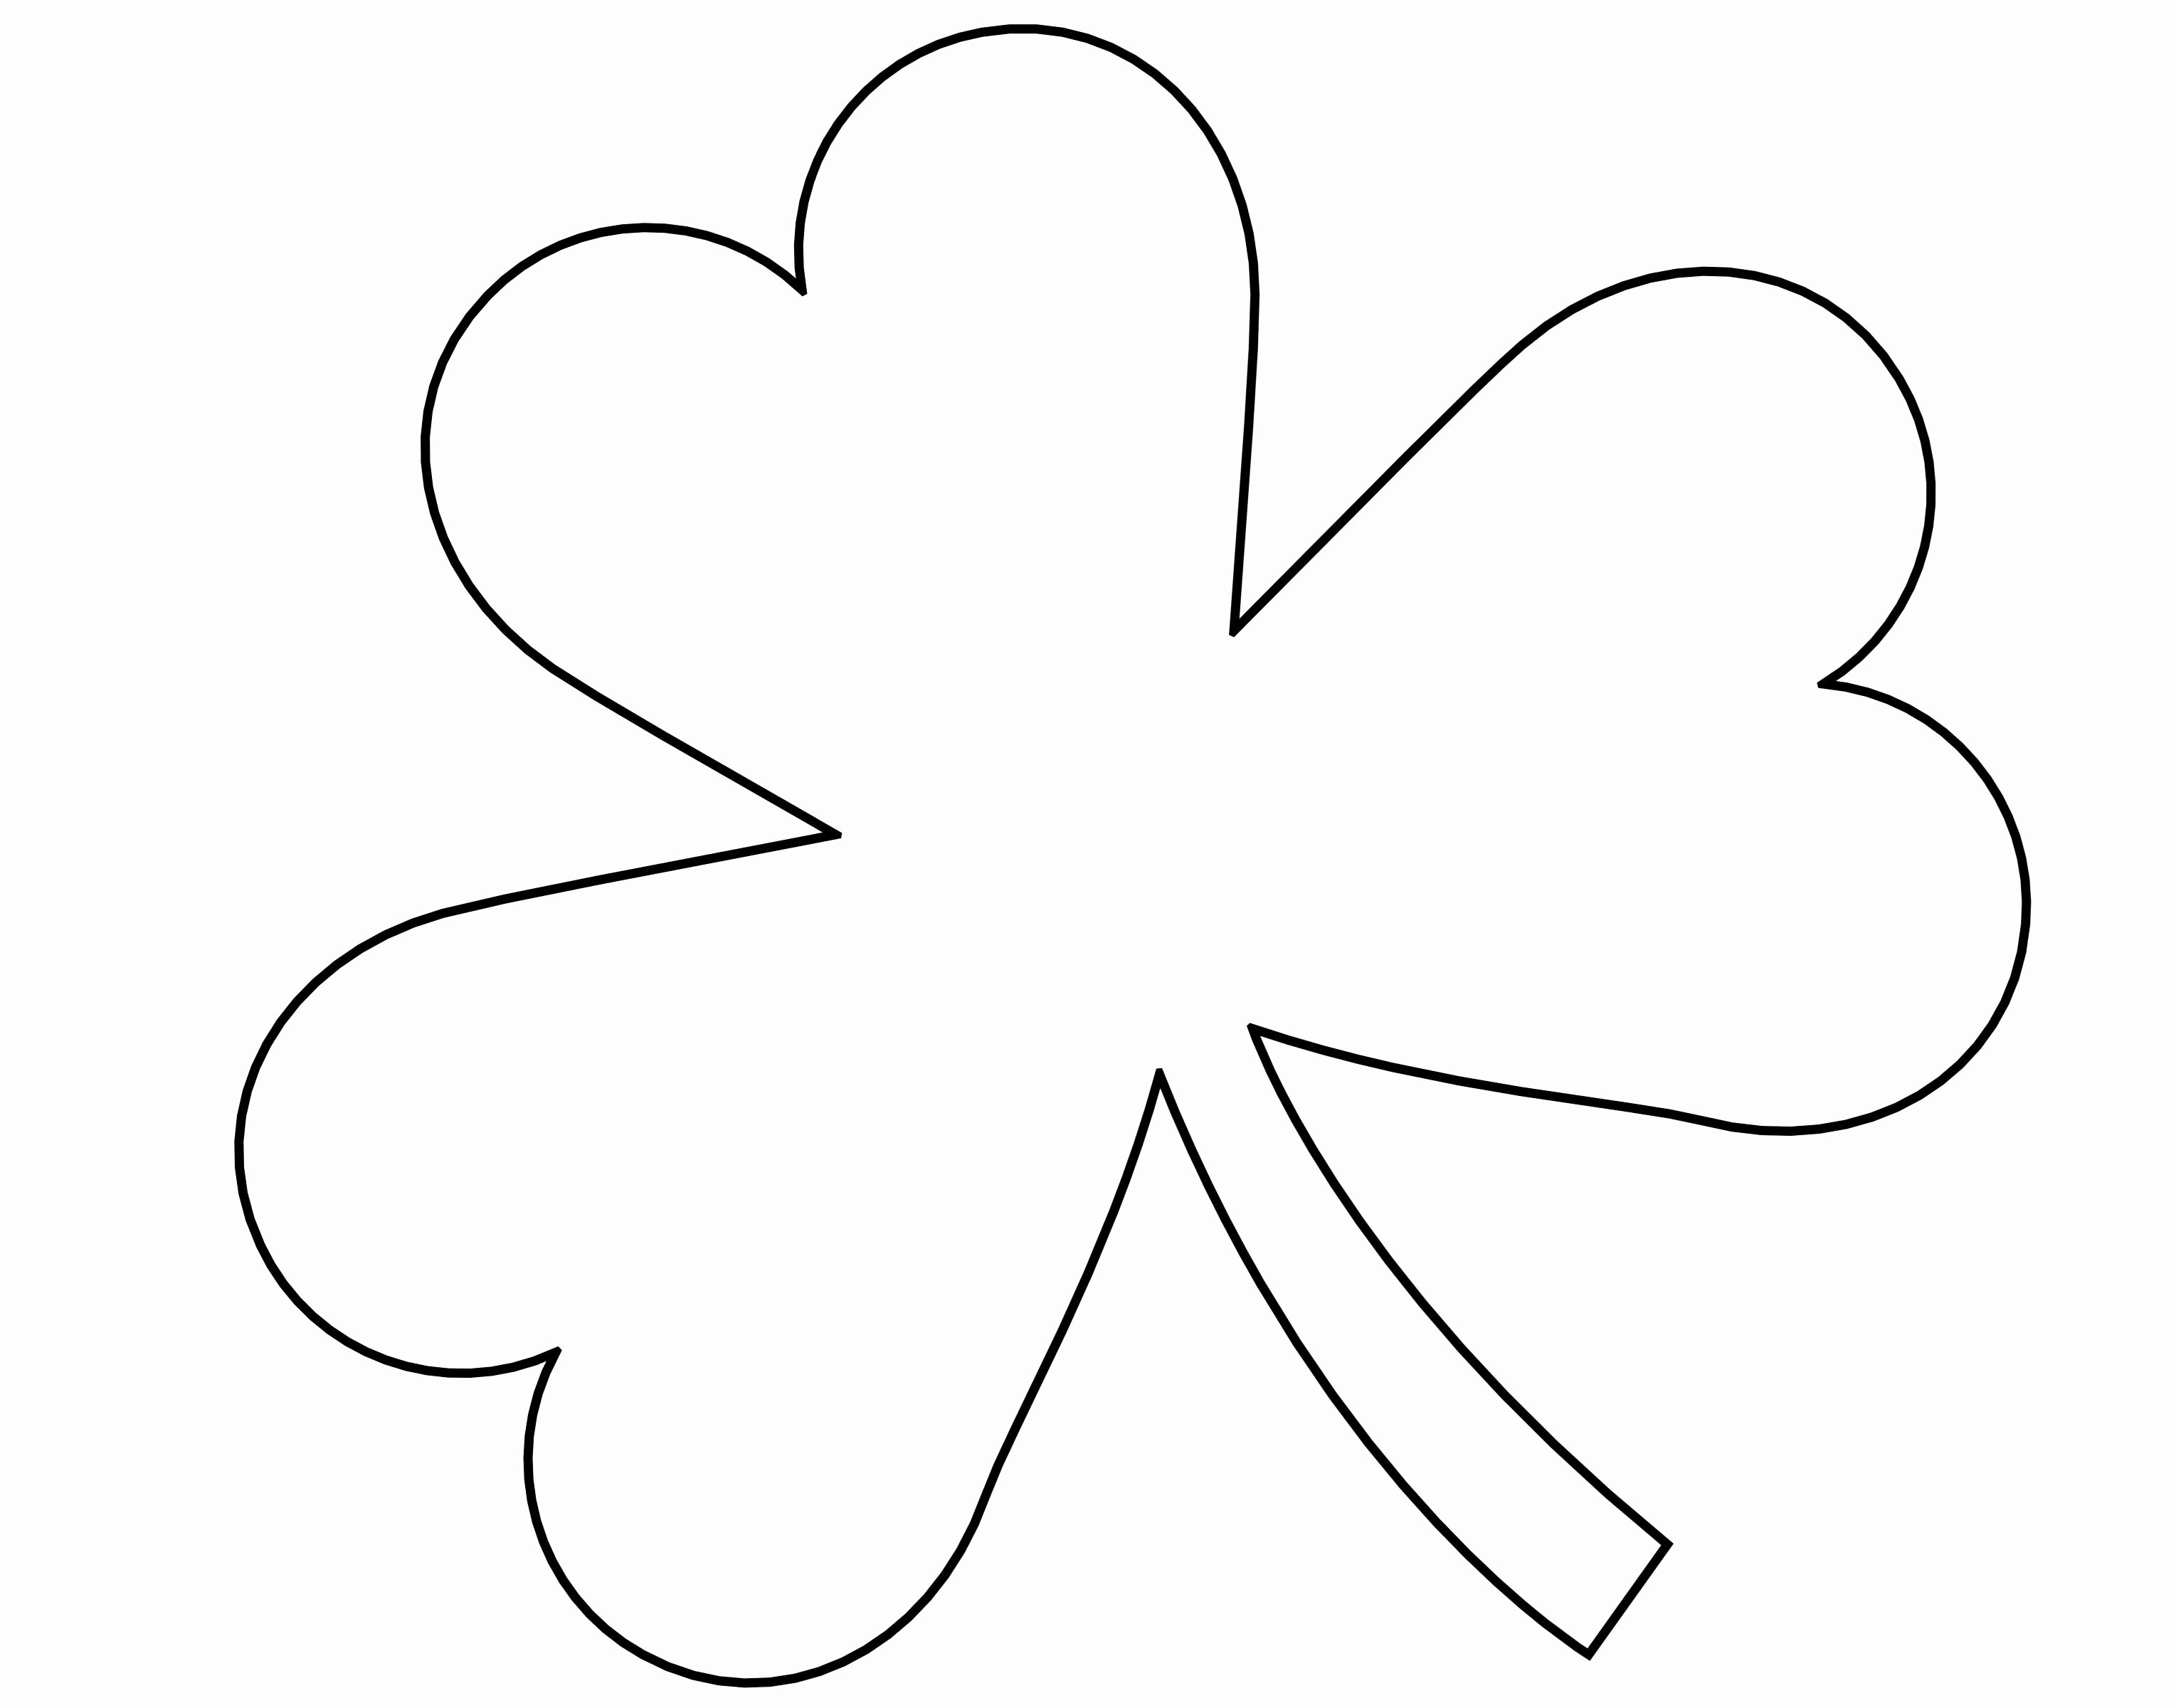 Shamrock Pictures to Print Awesome 5 Best Of Four Leaf Shamrock Template Printable